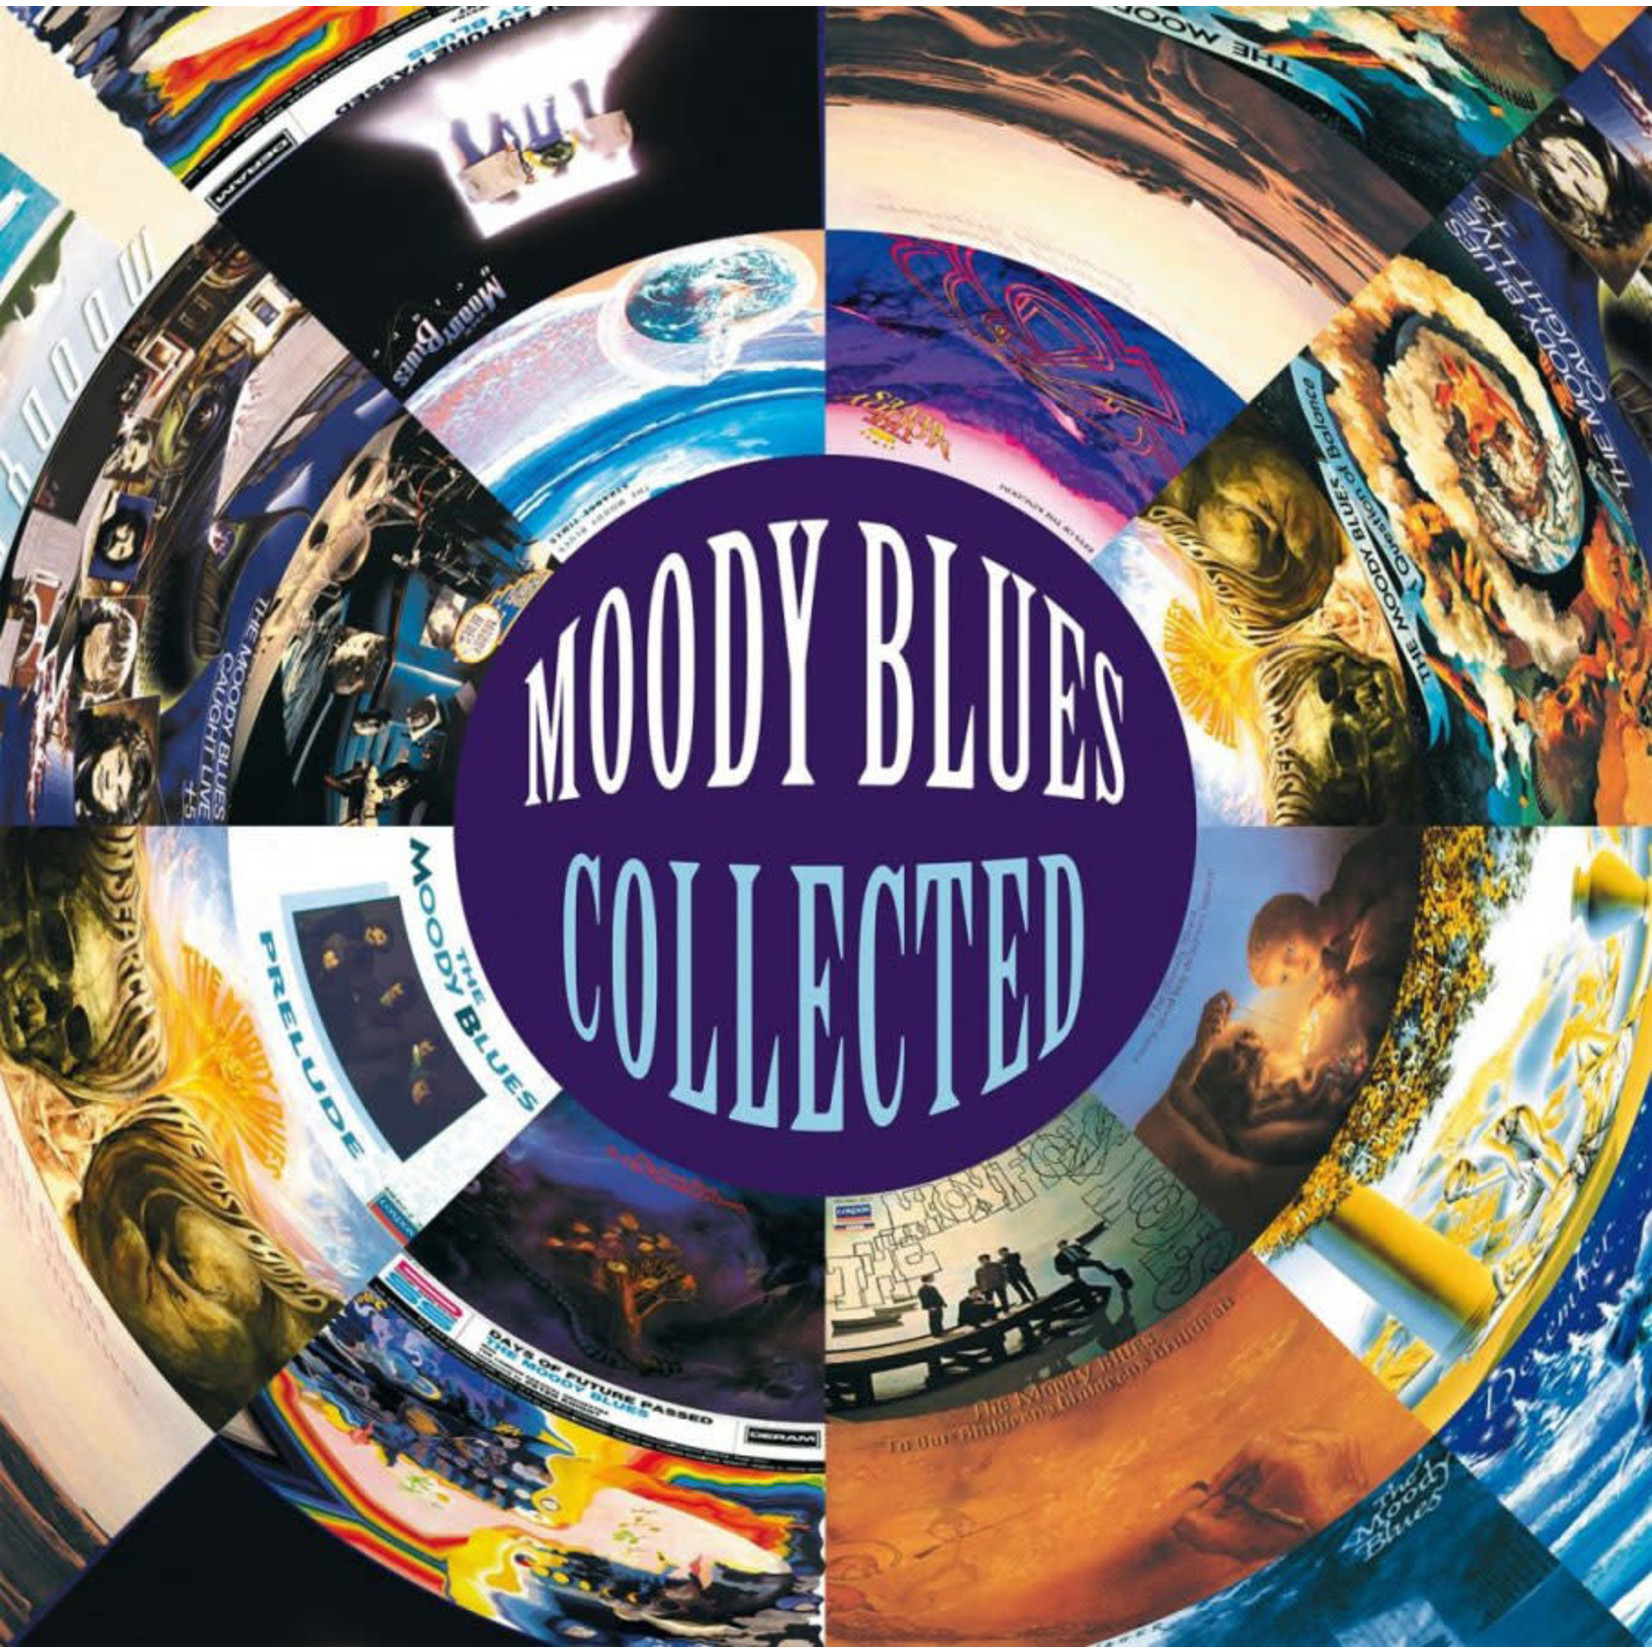 Vinyl Moody Blues - Collected